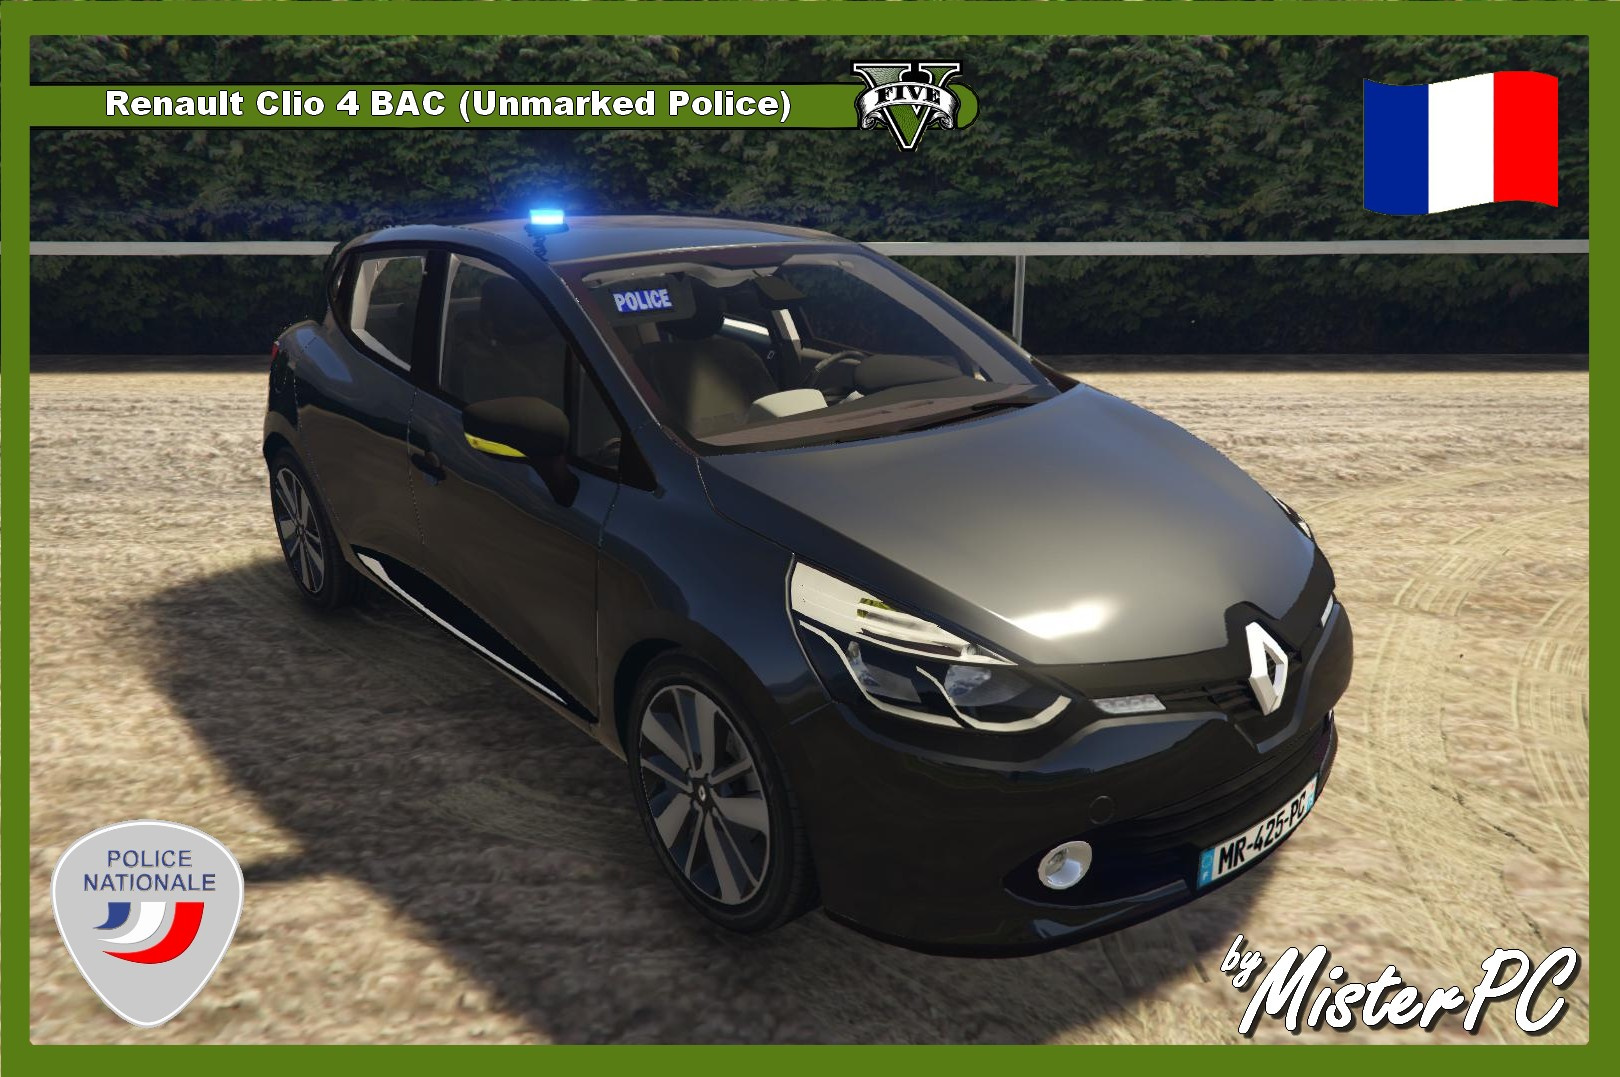 renault clio 4 bac unmarked police gta5. Black Bedroom Furniture Sets. Home Design Ideas